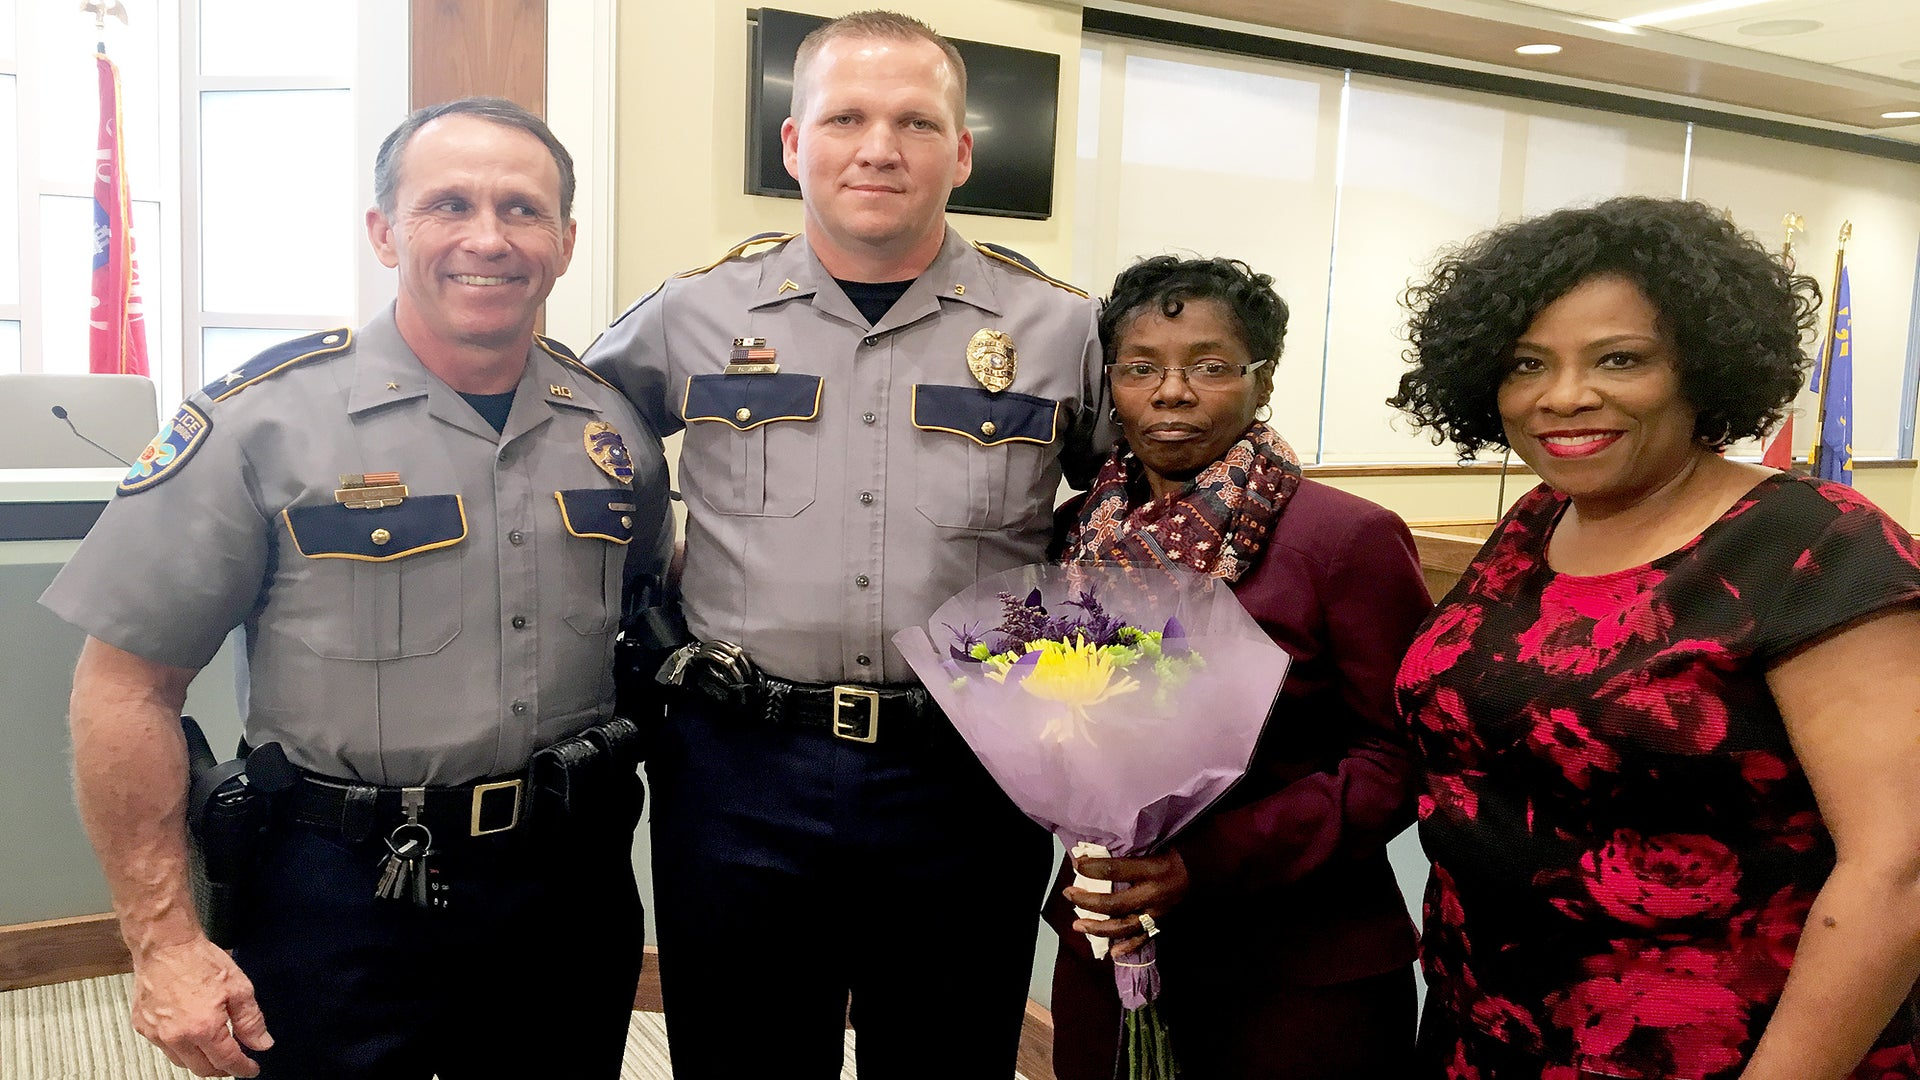 Hero Grandmother Thwarts Baton Attack On Baton Rouge Cop: 'We Have Just Lost Too Many Men'